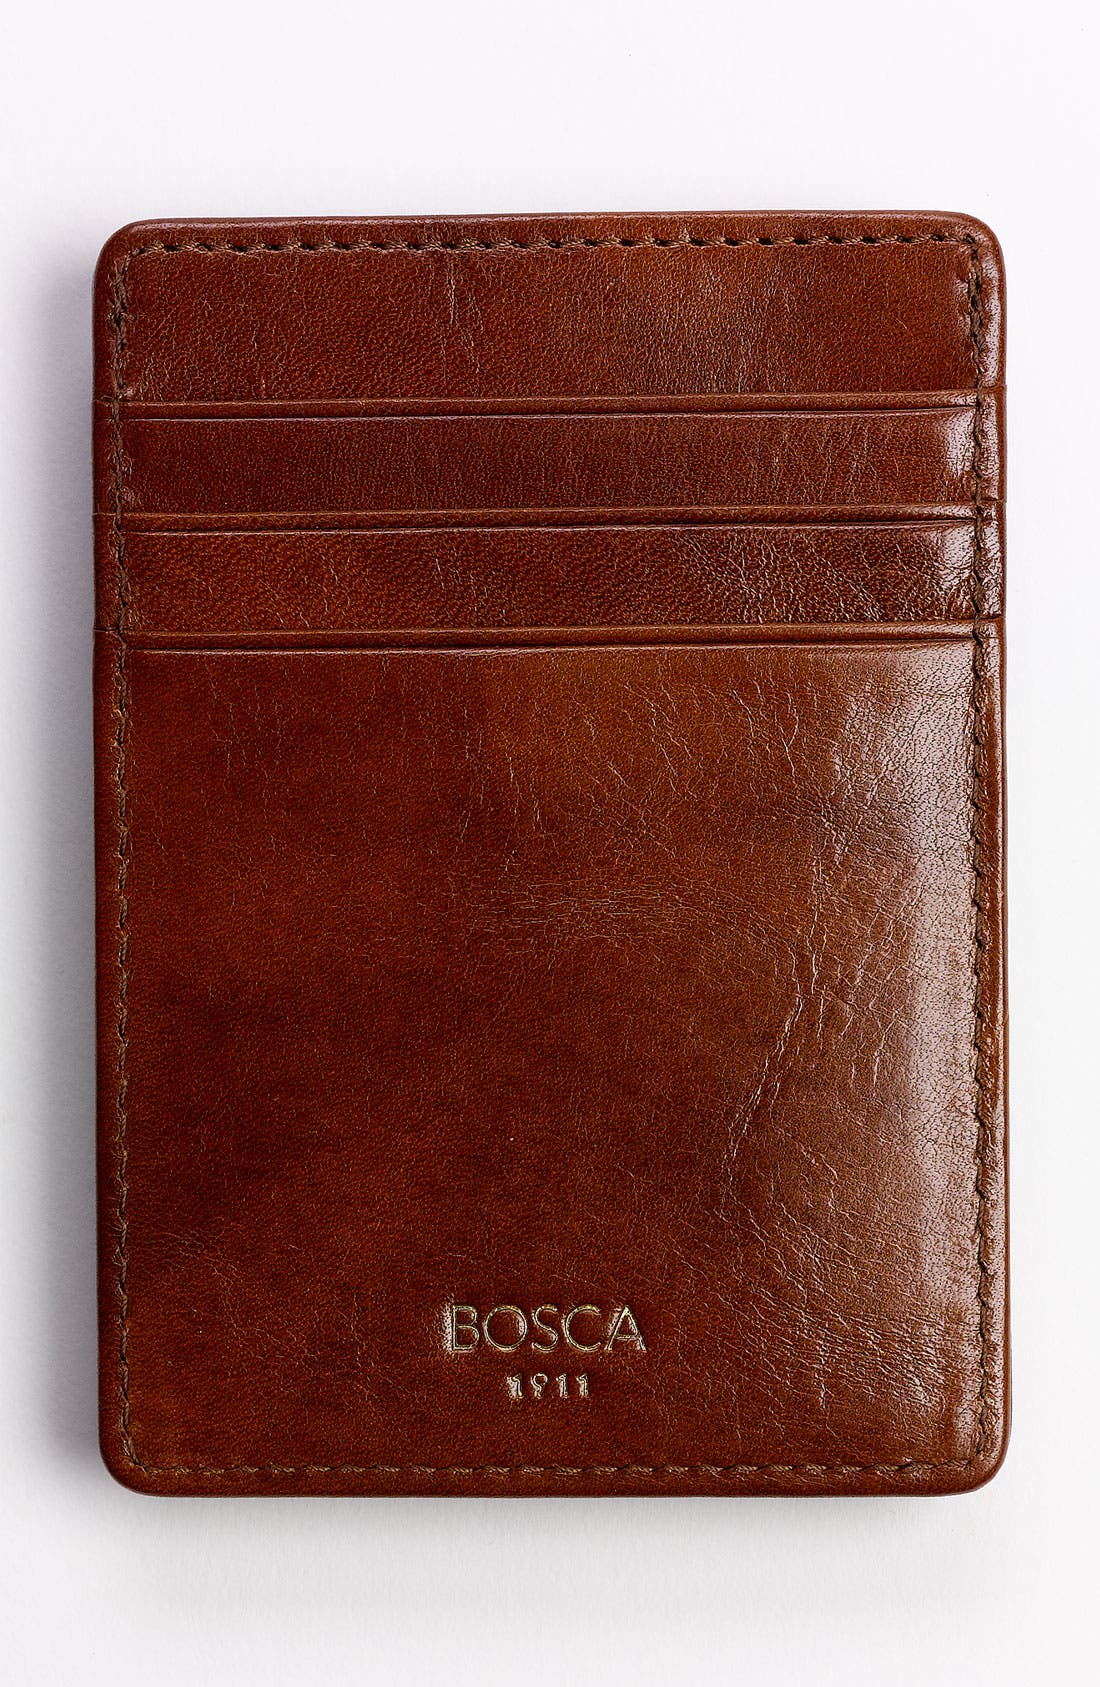 A sturdy, wrapped money clip fronts a slim front-pocket wallet crafted from high-shine leather with a rich grain. Style Name: Bosca Old Leather Front Pocket Wallet. Style Number: 569547. Available in stores.